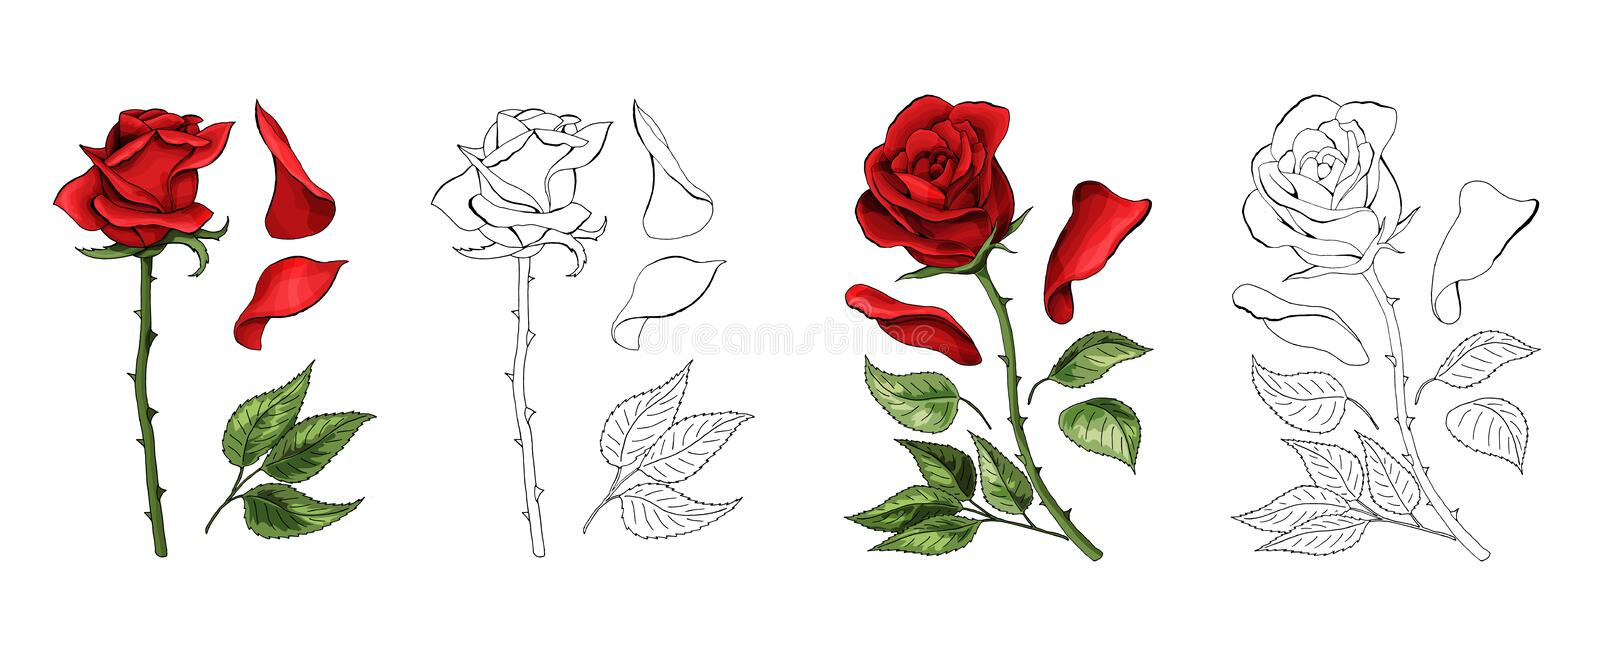 Roses hand drawing and colored. A blossoming rosebud. Vector illustration. stock illustration